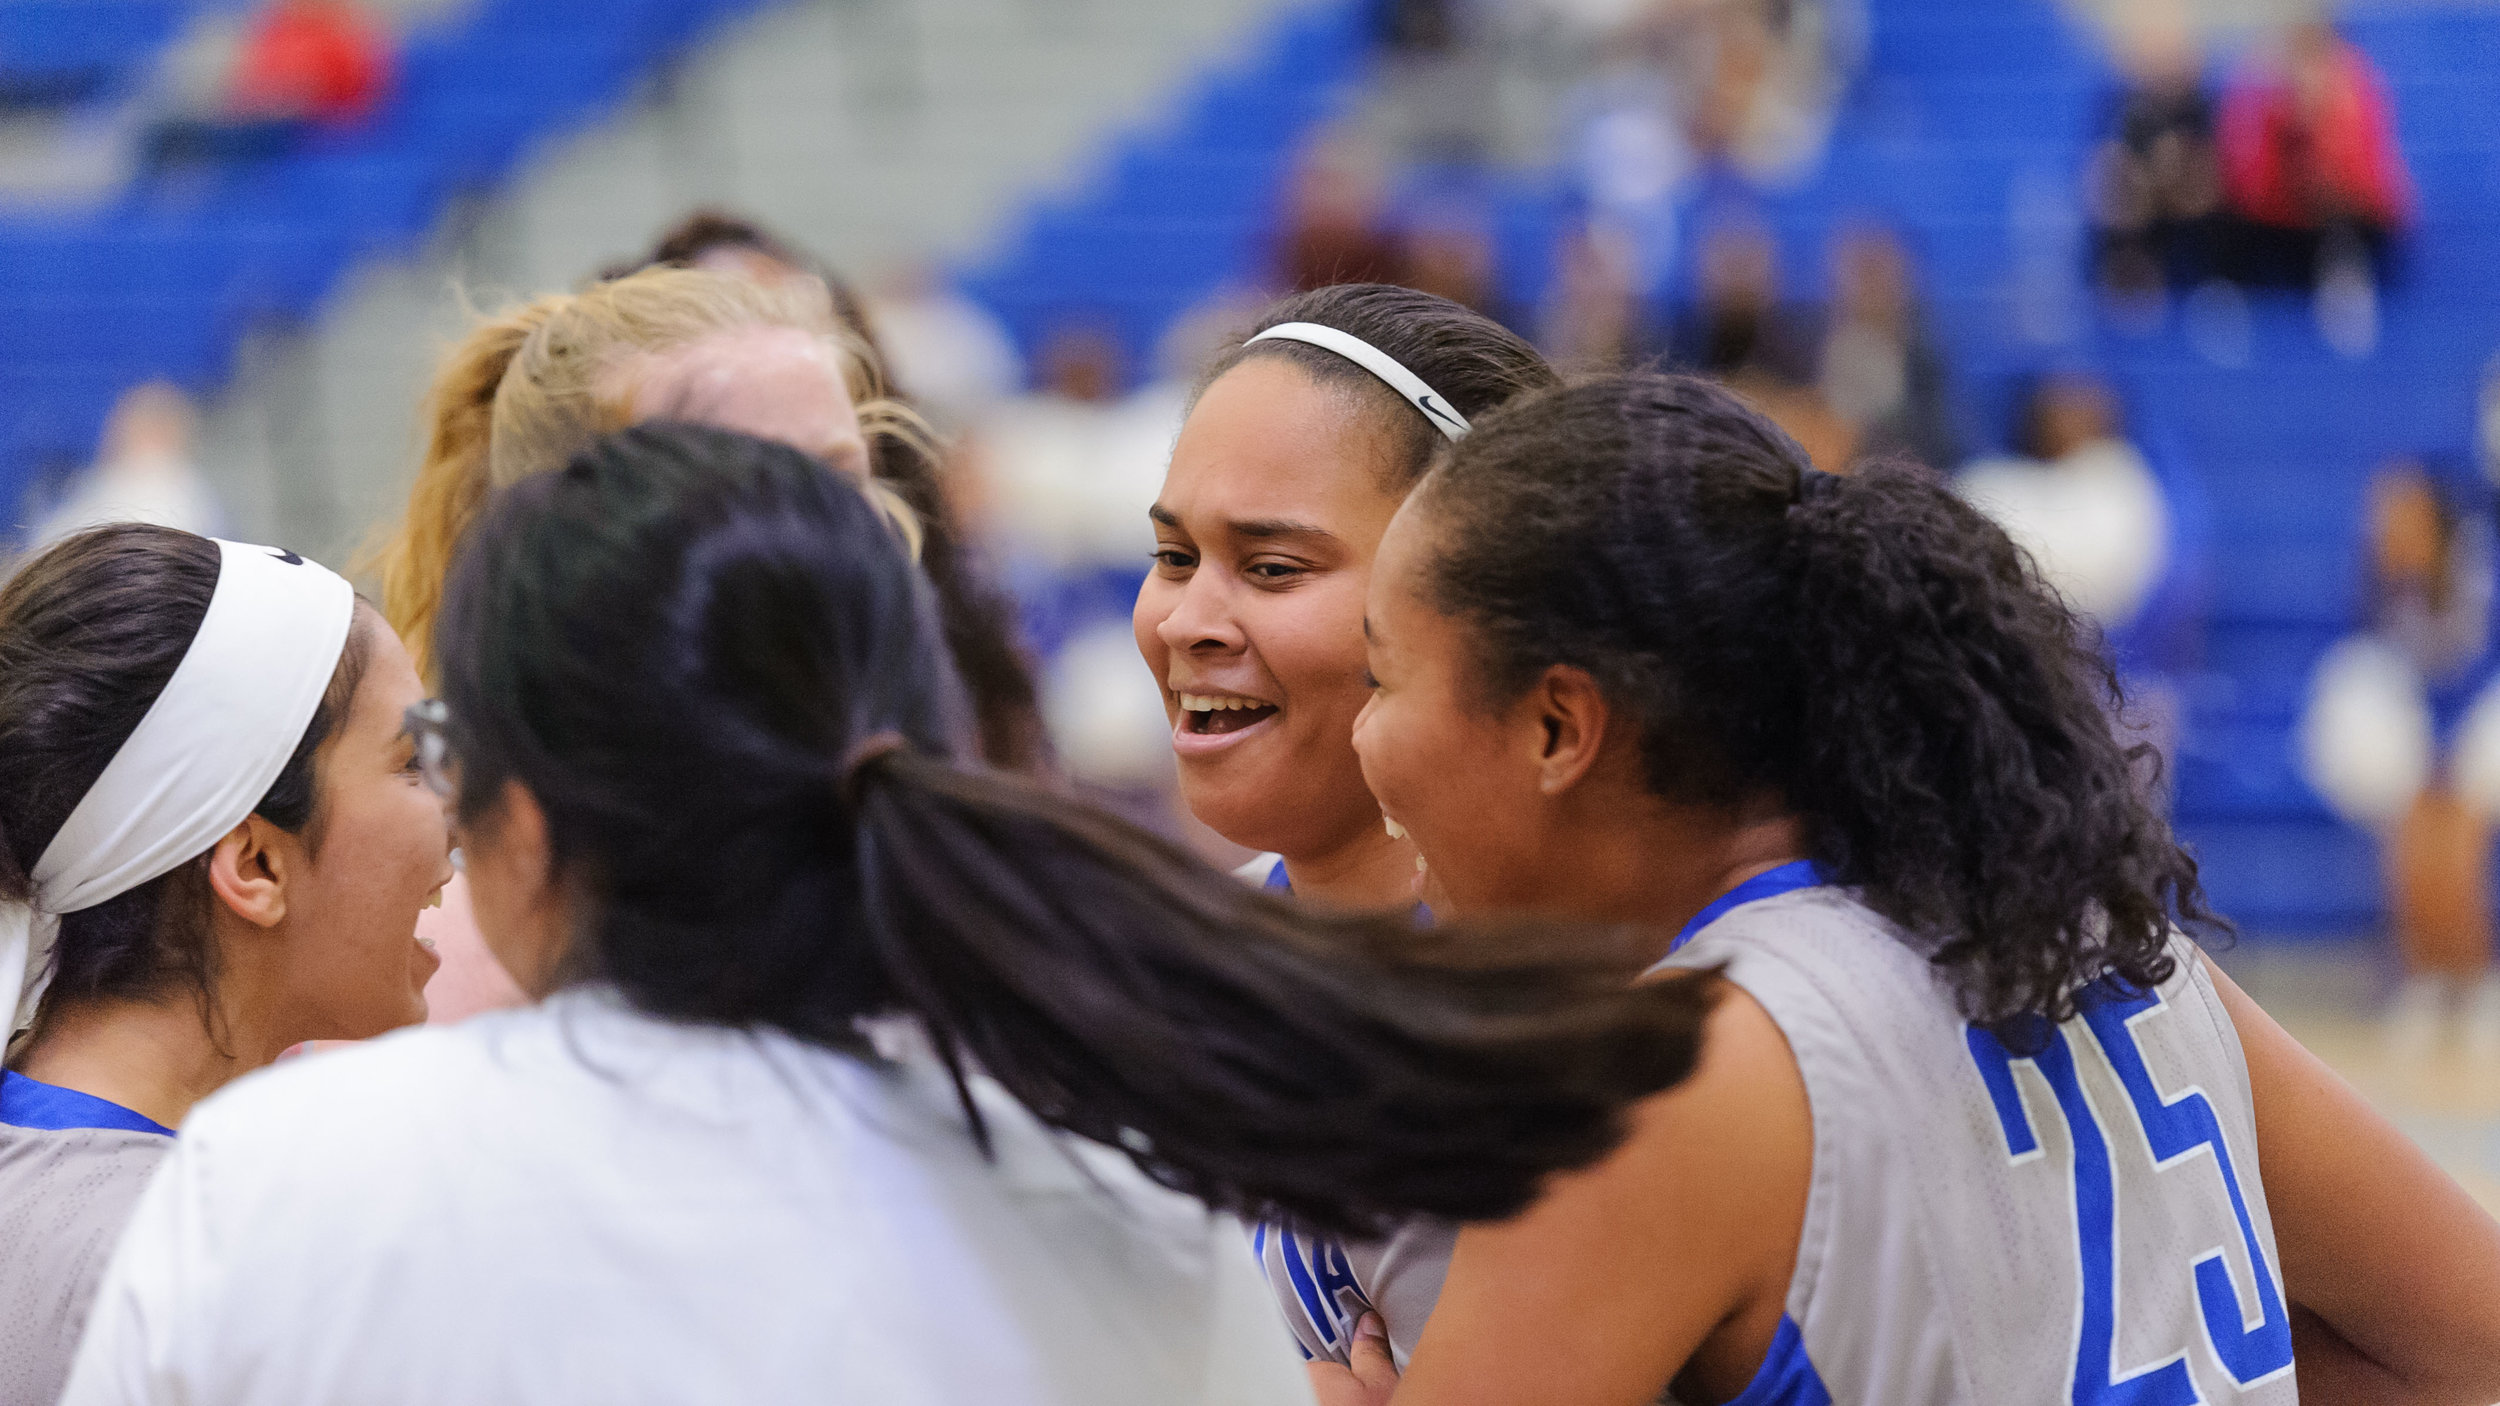 The Corsairs celebrate forward Rejinae Crandell's (0,Middle) three point make from half court at the end of the game. The Santa Monica College Corsairs win their final game of the season 76-53 against the Pierce College Brahmas. The game was held at the SMC Pavilion at the Santa Monica College Main Campus in Santa Monica, Calif.. February 17, 2018. (Photo by: Justin Han/Corsair Staff)